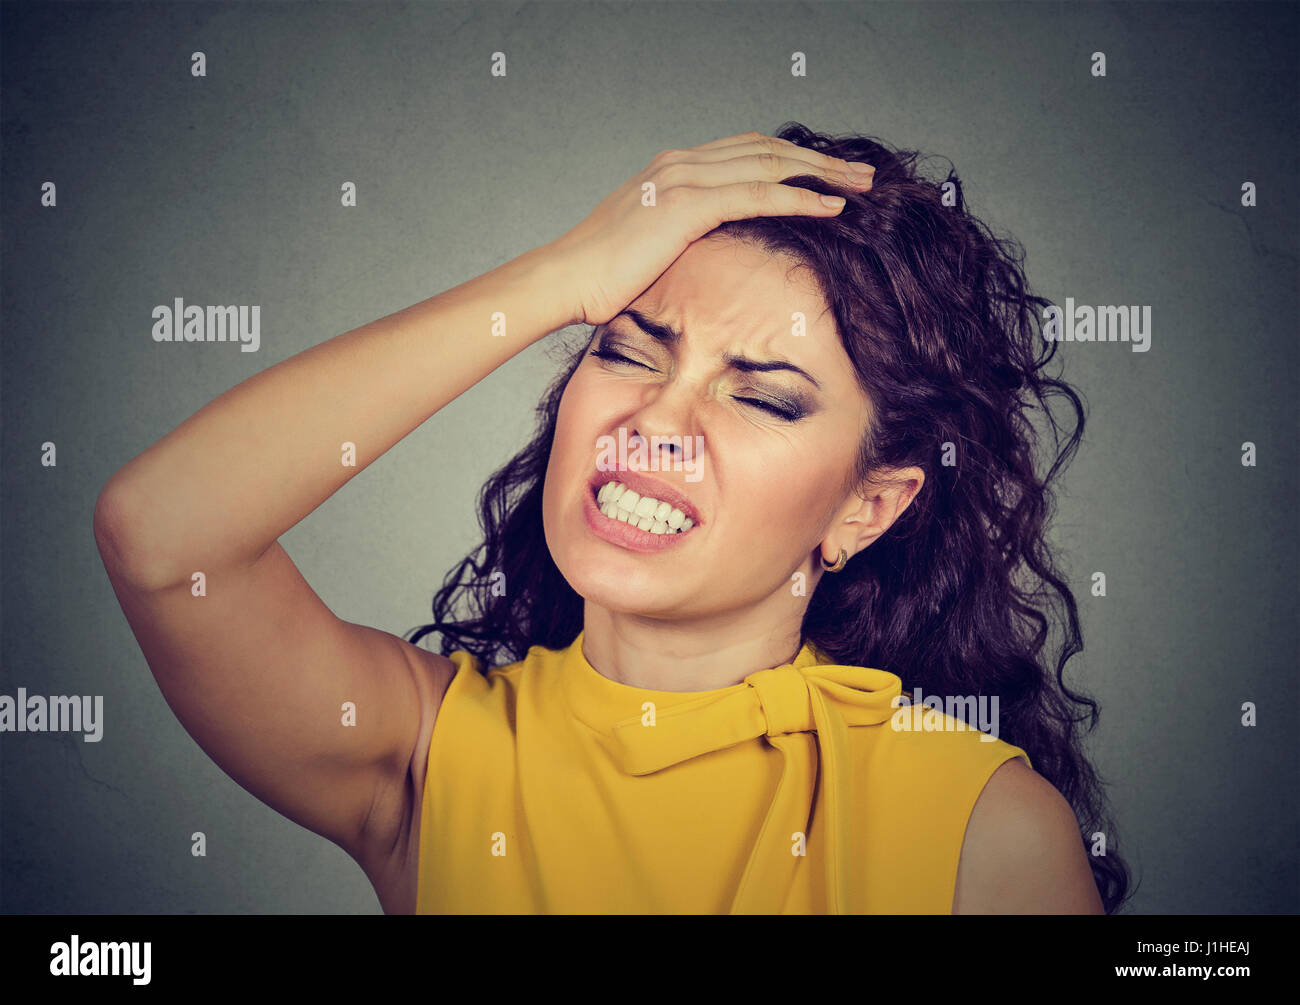 Regretful young woman made a mistake - Stock Image